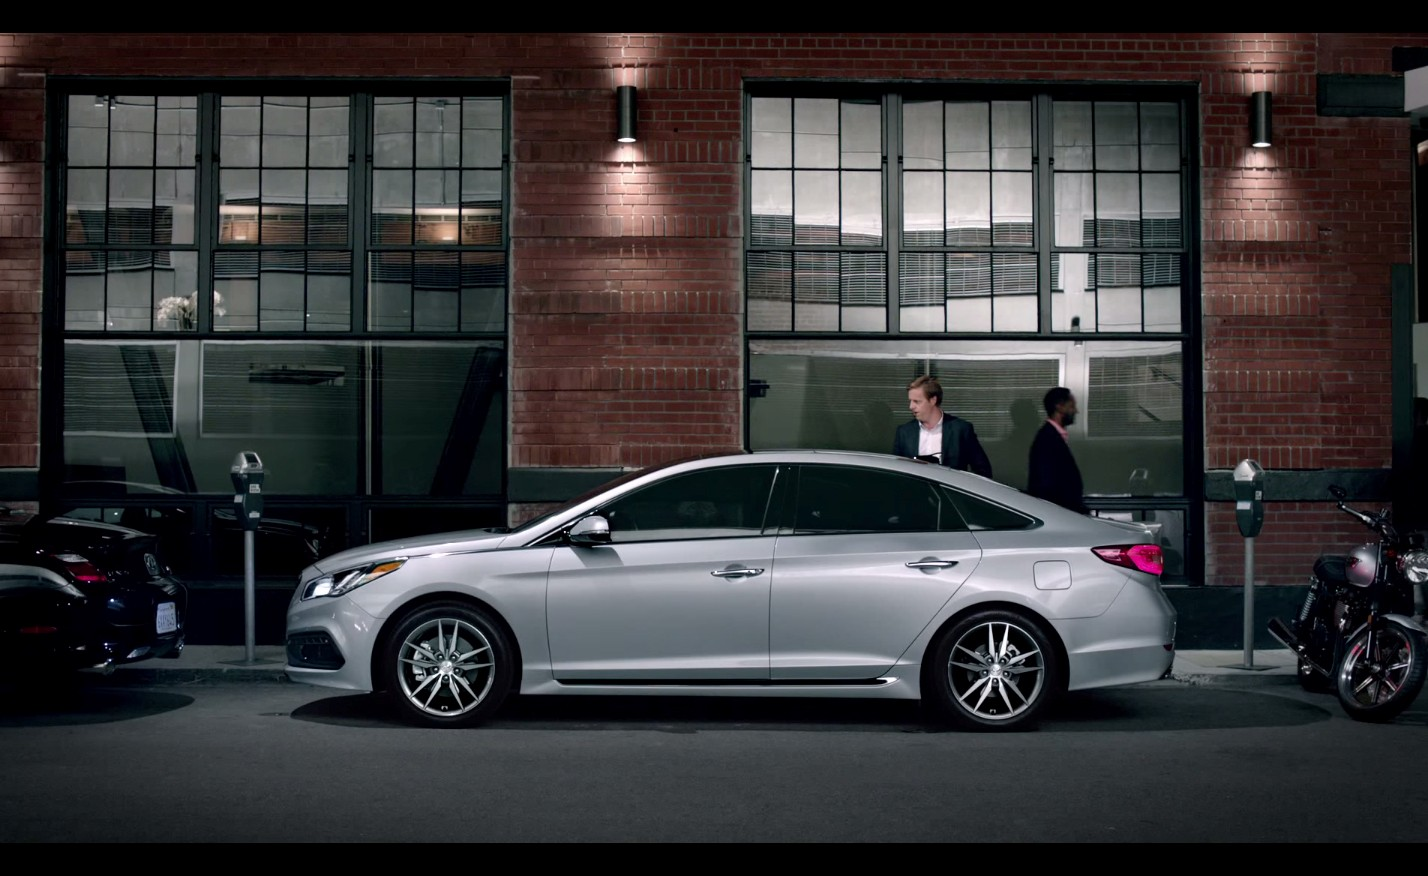 hyundai sonata msrp hybrid no h yet news details on released prices